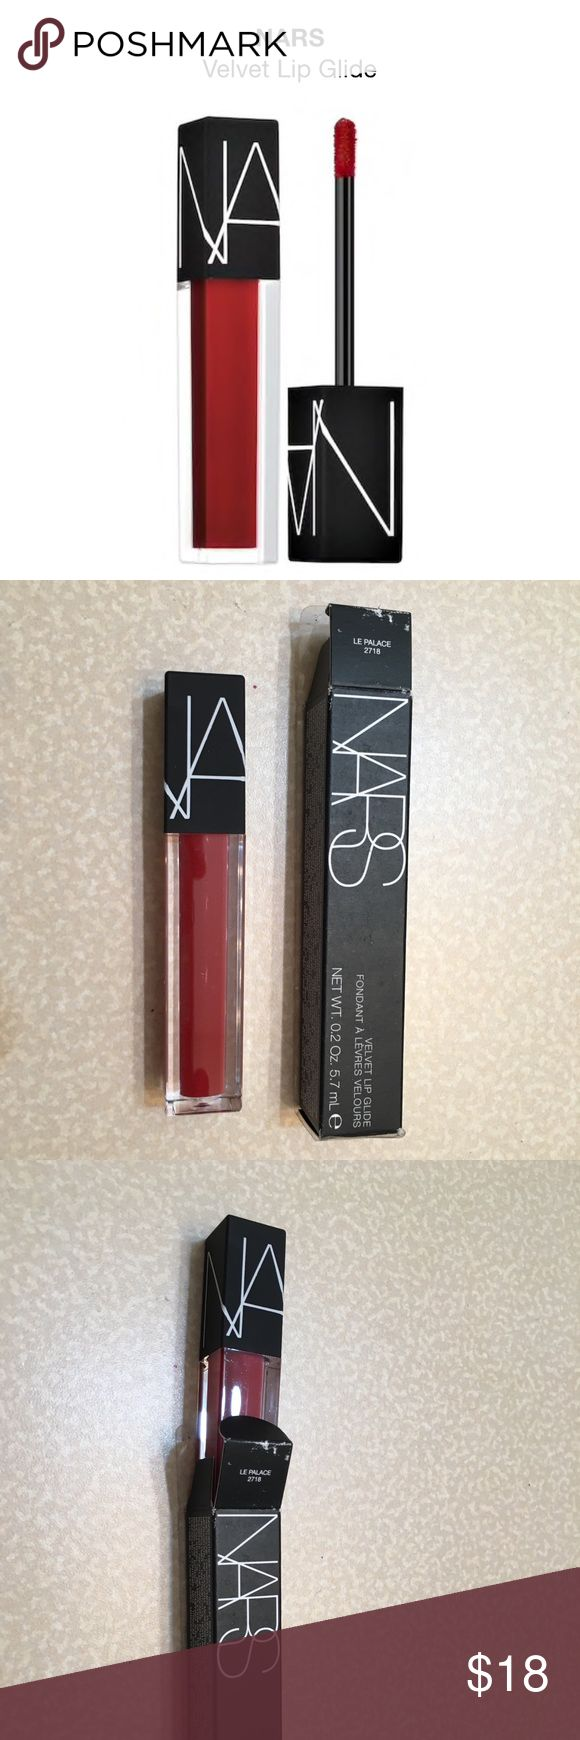 NEW! NARS Lip Glide New in box! NARS lip glide in color Le Palace - blood red. Retails $26 An innovative, long-lasting lip color with a smooth, semi-matte finish that provides ultimate hydration. NARS Makeup Lip Balm & Gloss